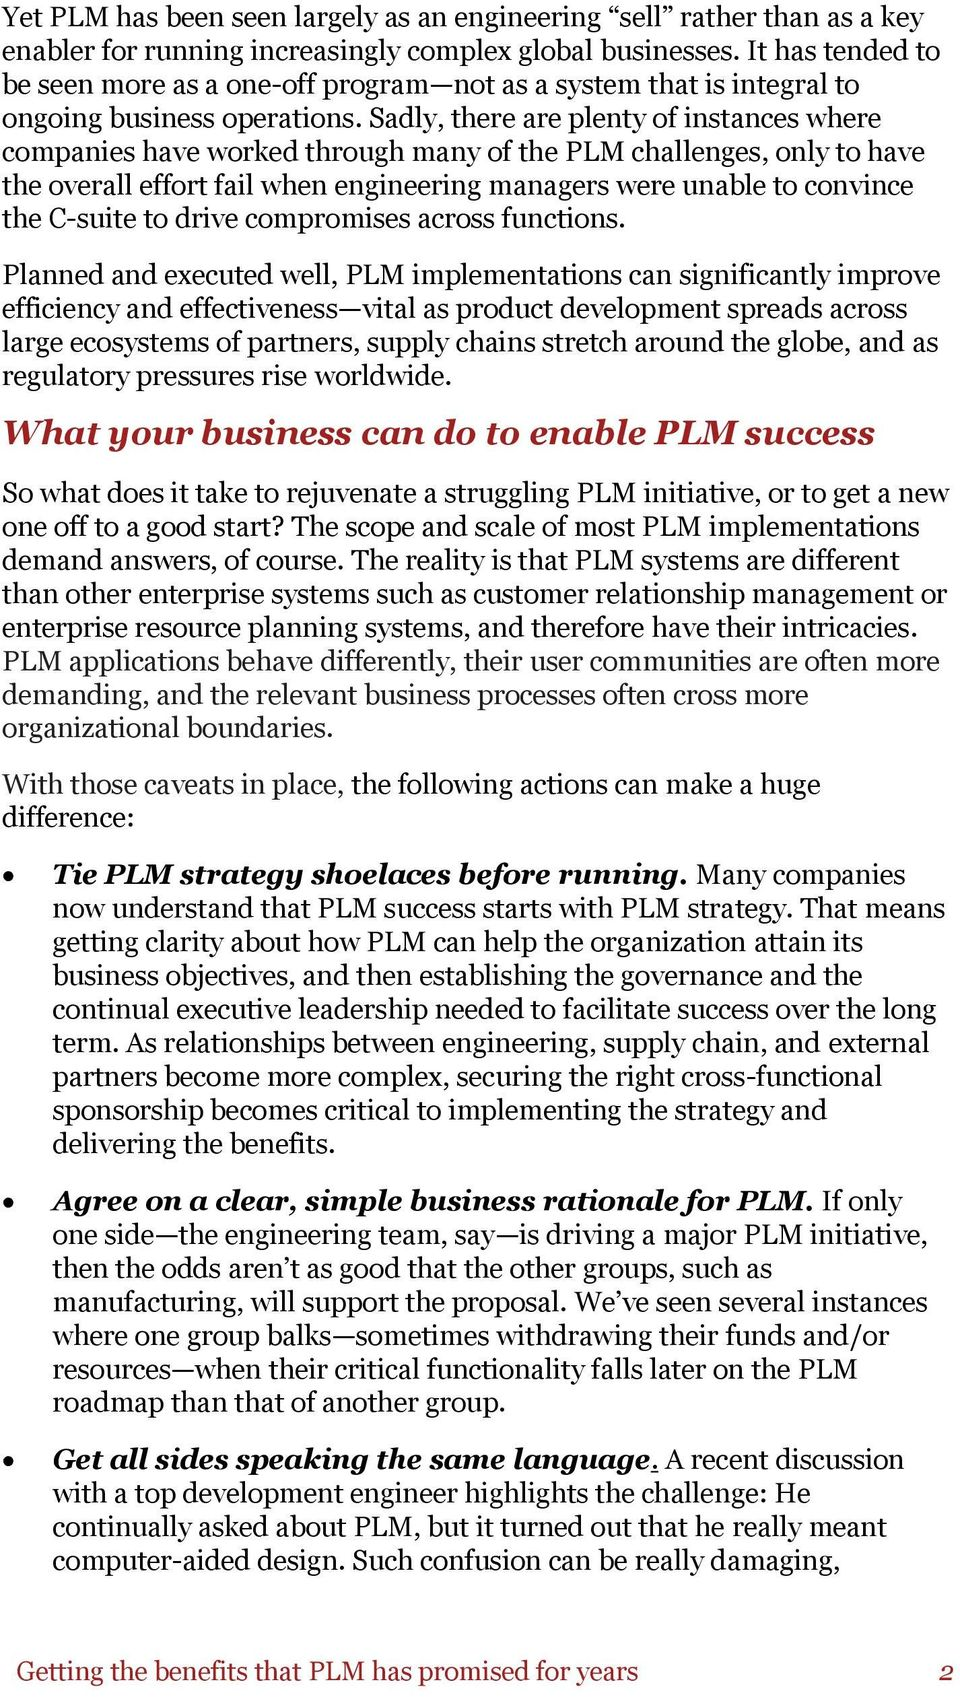 Sadly, there are plenty of instances where companies have worked through many of the PLM challenges, only to have the overall effort fail when engineering managers were unable to convince the C-suite